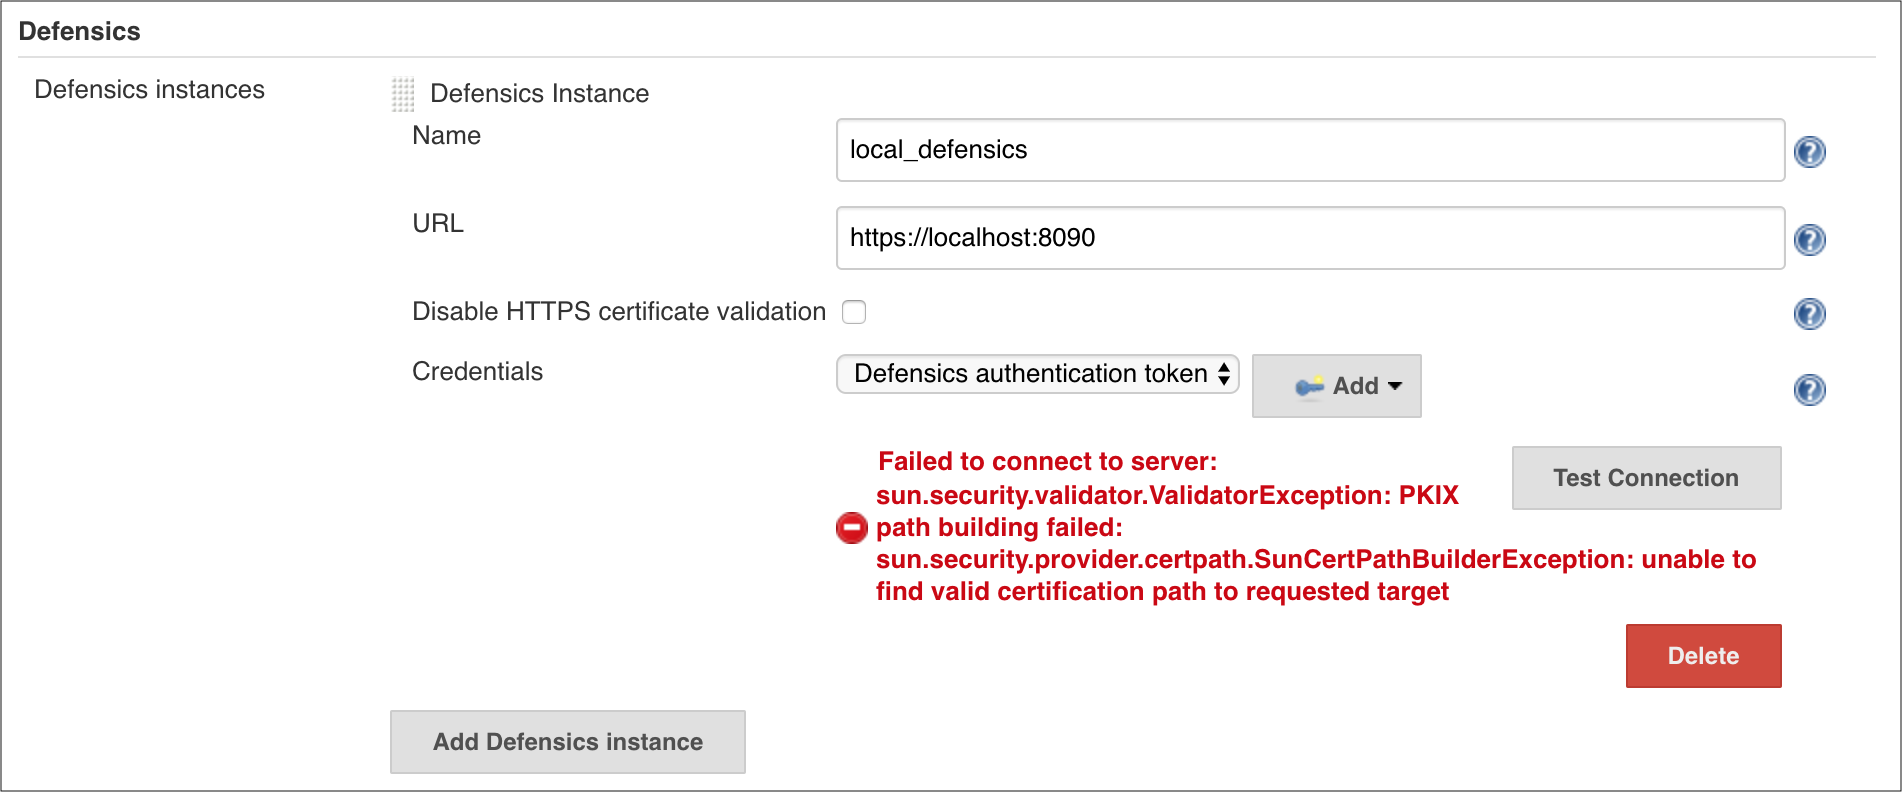 """Unable to find valid certification path"" when testing connection"